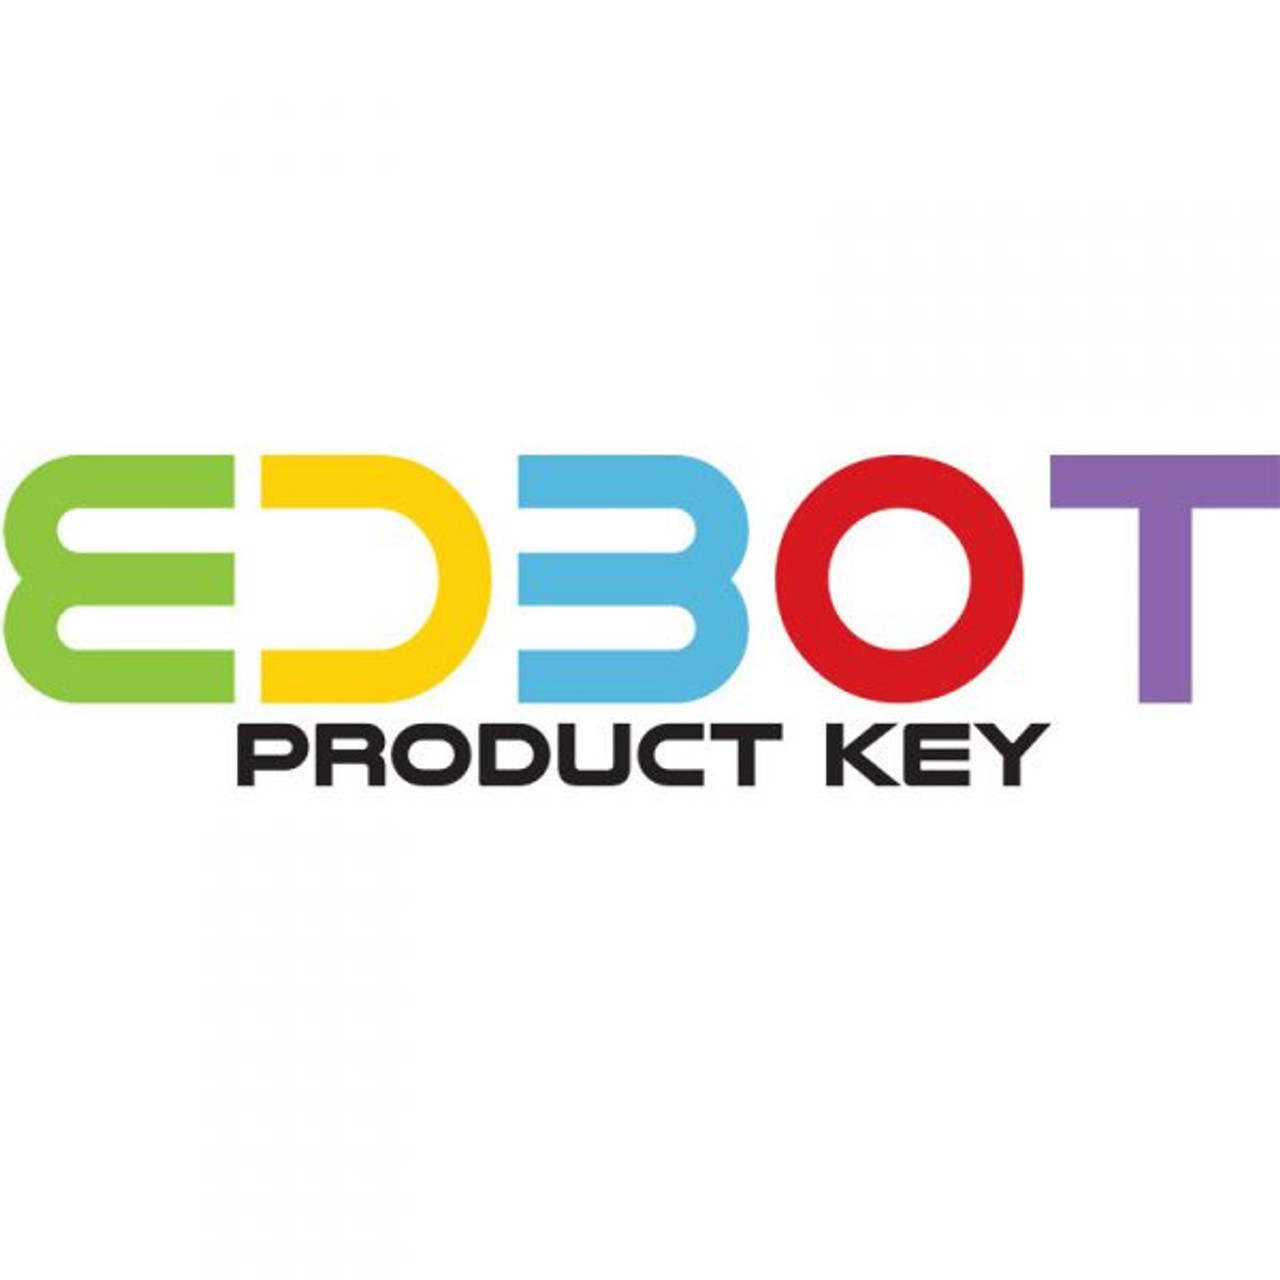 Edbot Software Product Key - DREAM